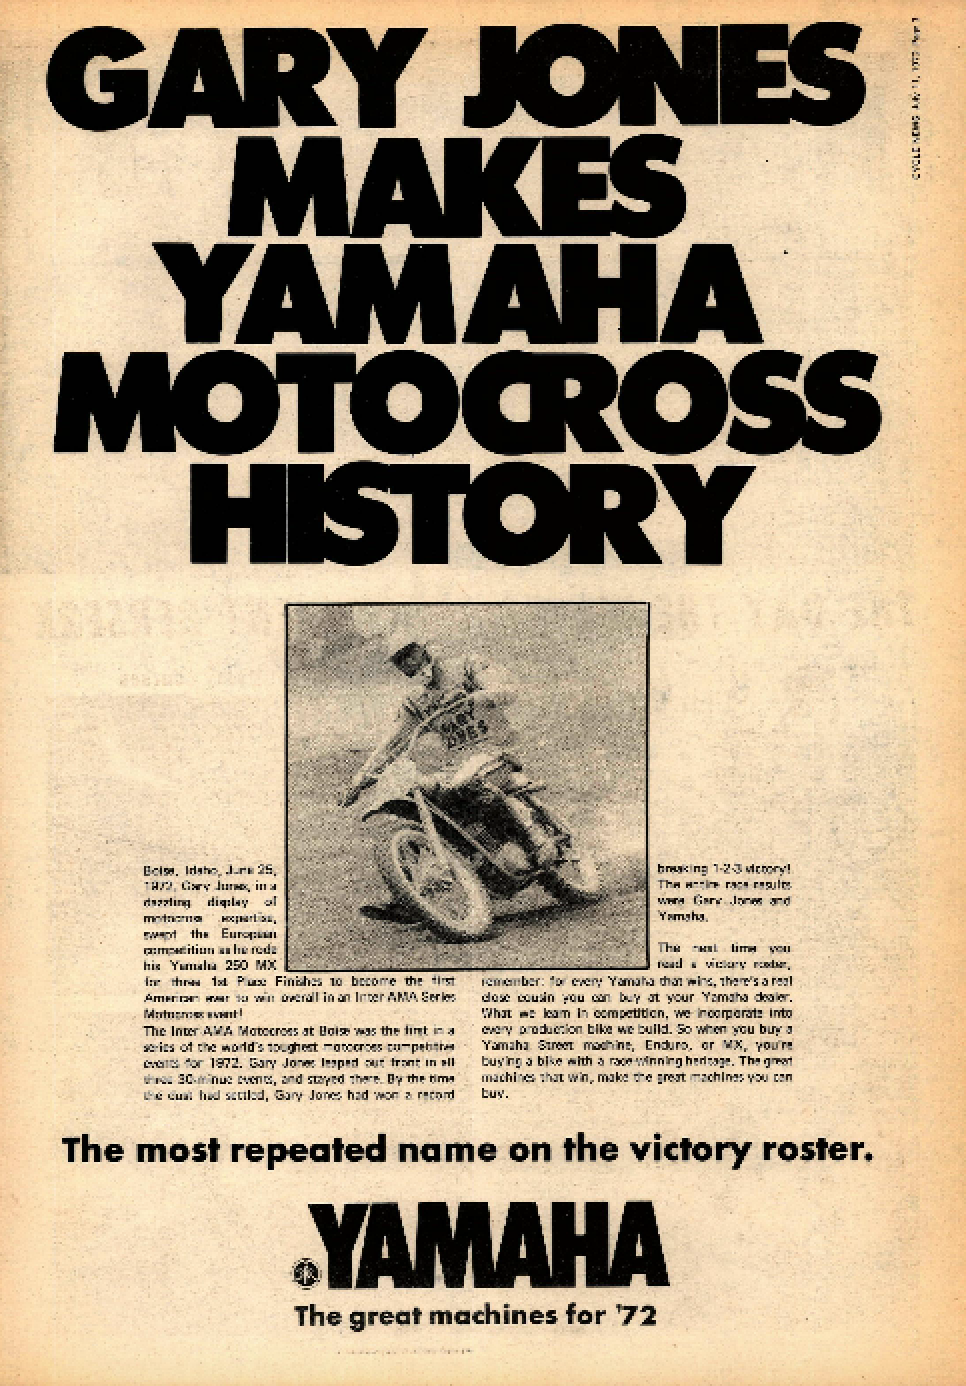 Yamaha boasted about Jones' triumph with this win ad in Cycle News.